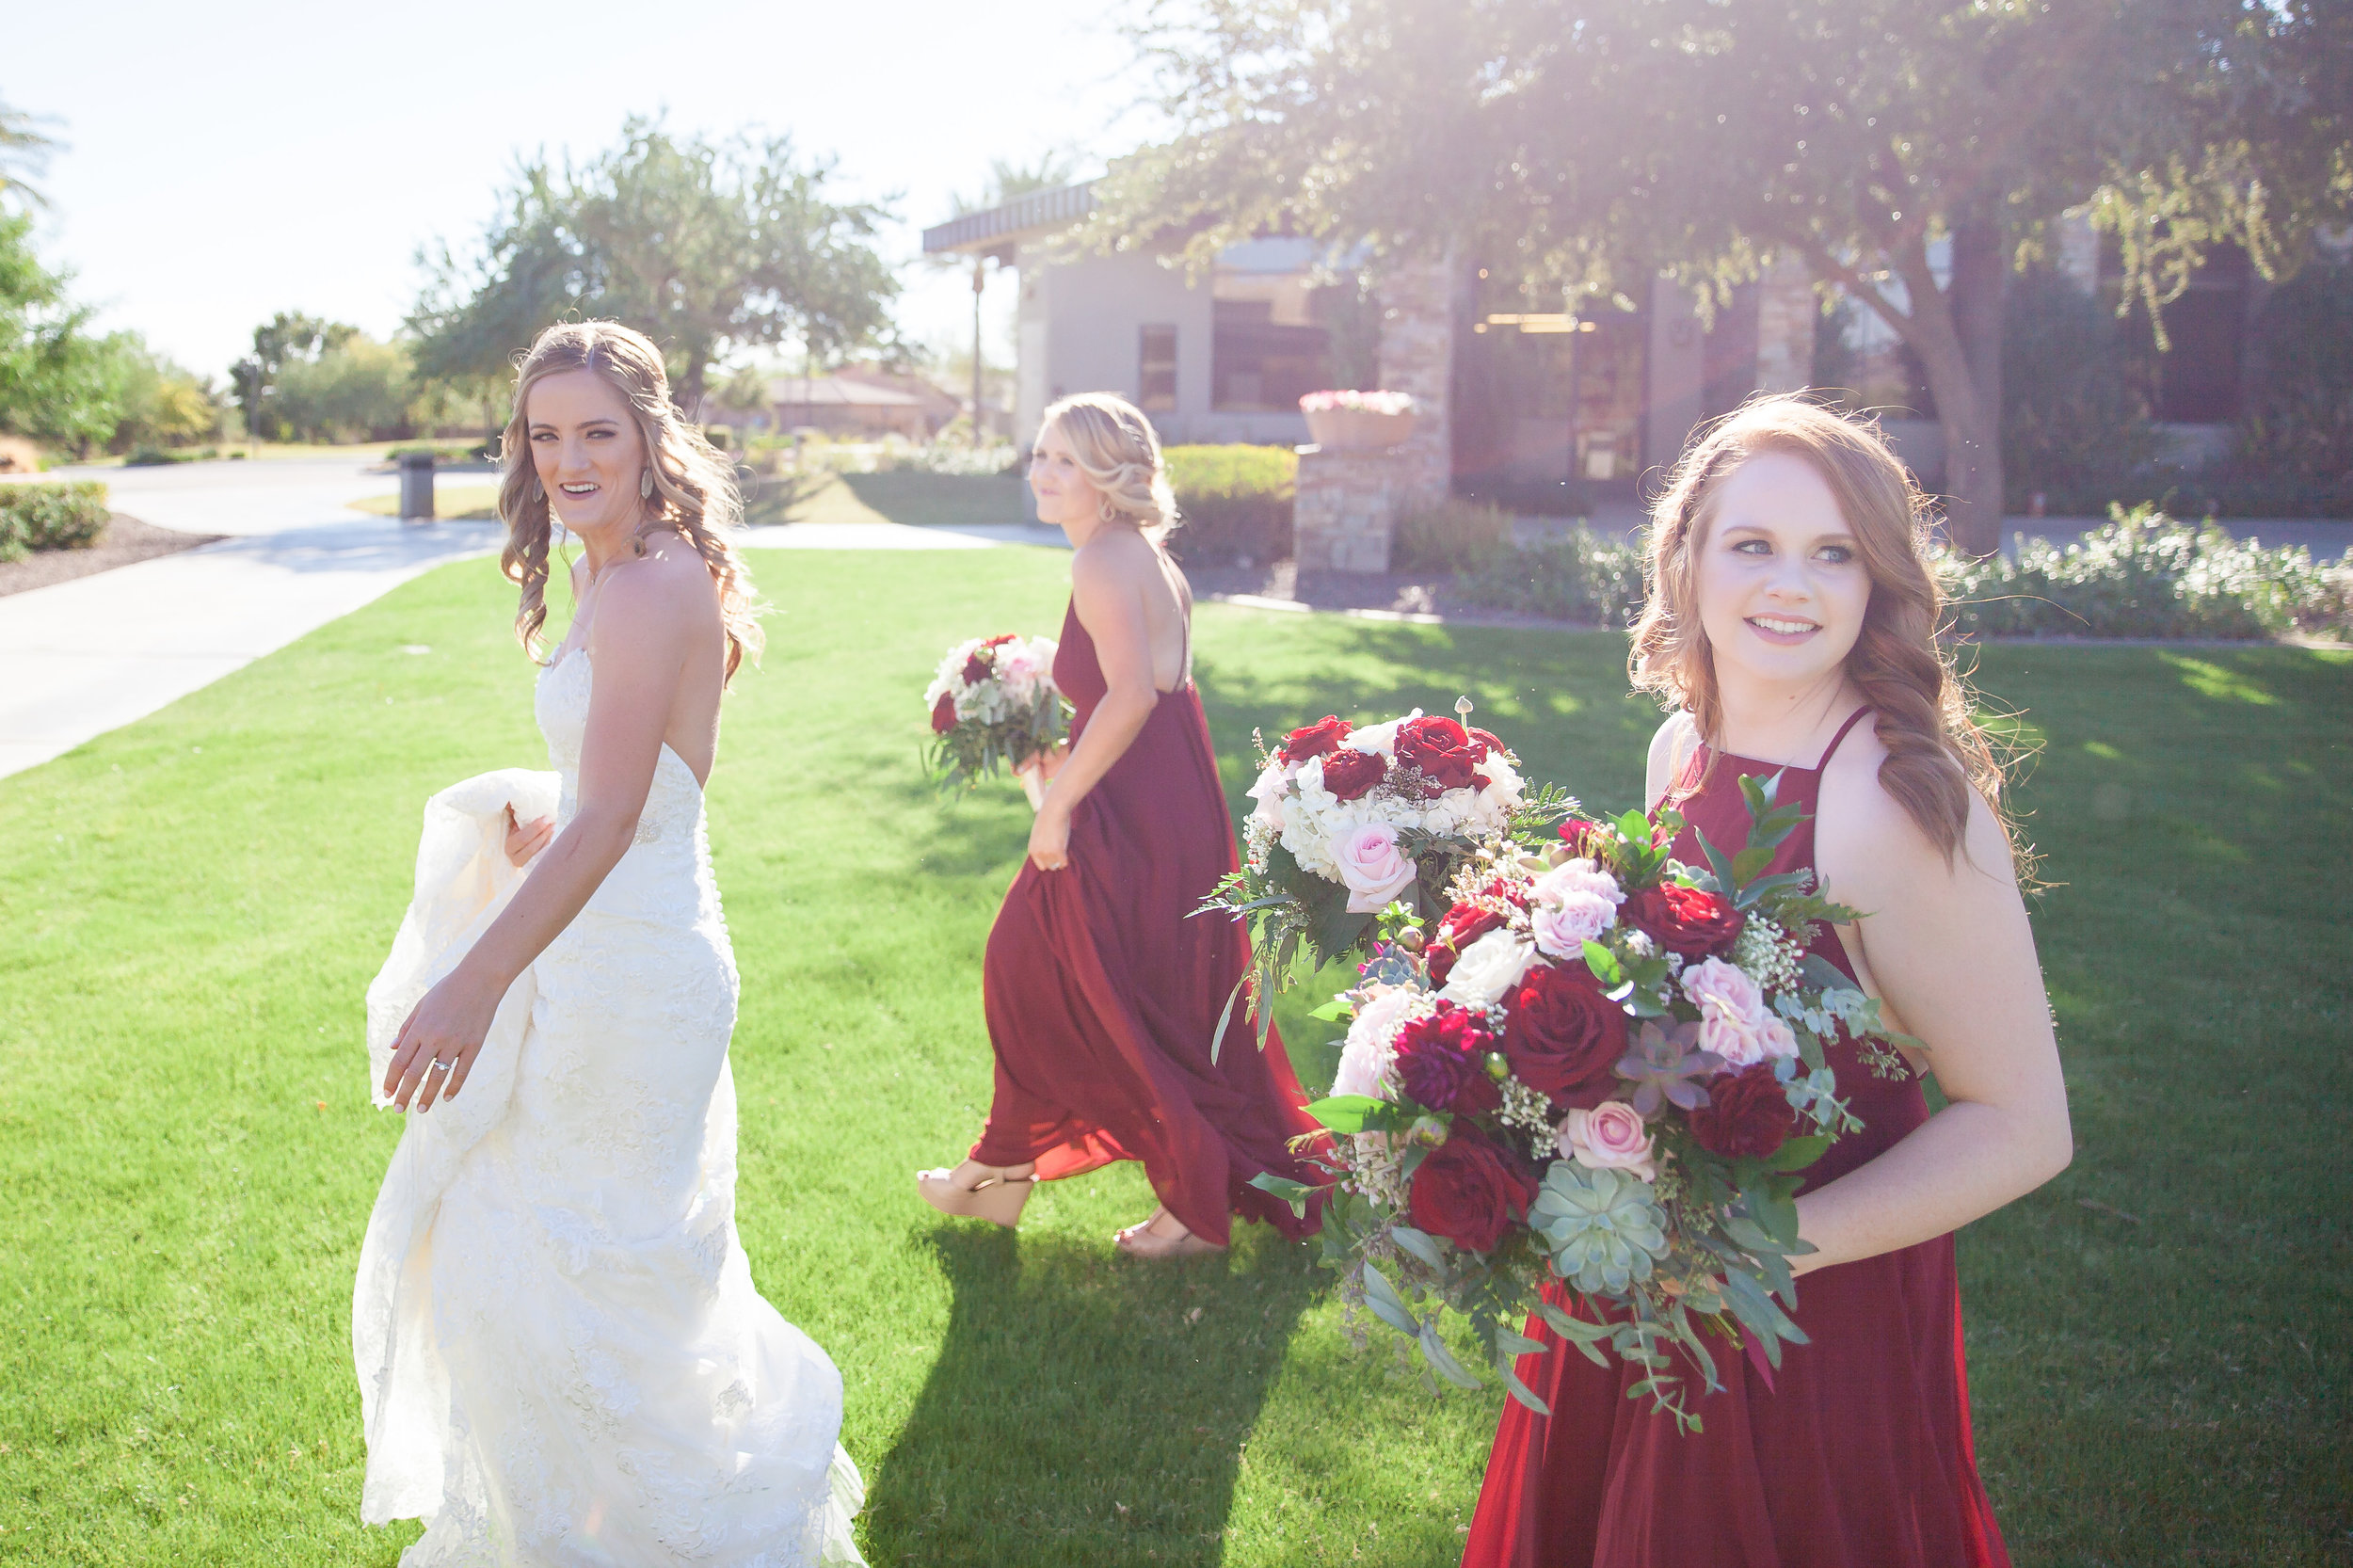 Kiva Club Trilogy at Vistancia wedding photography